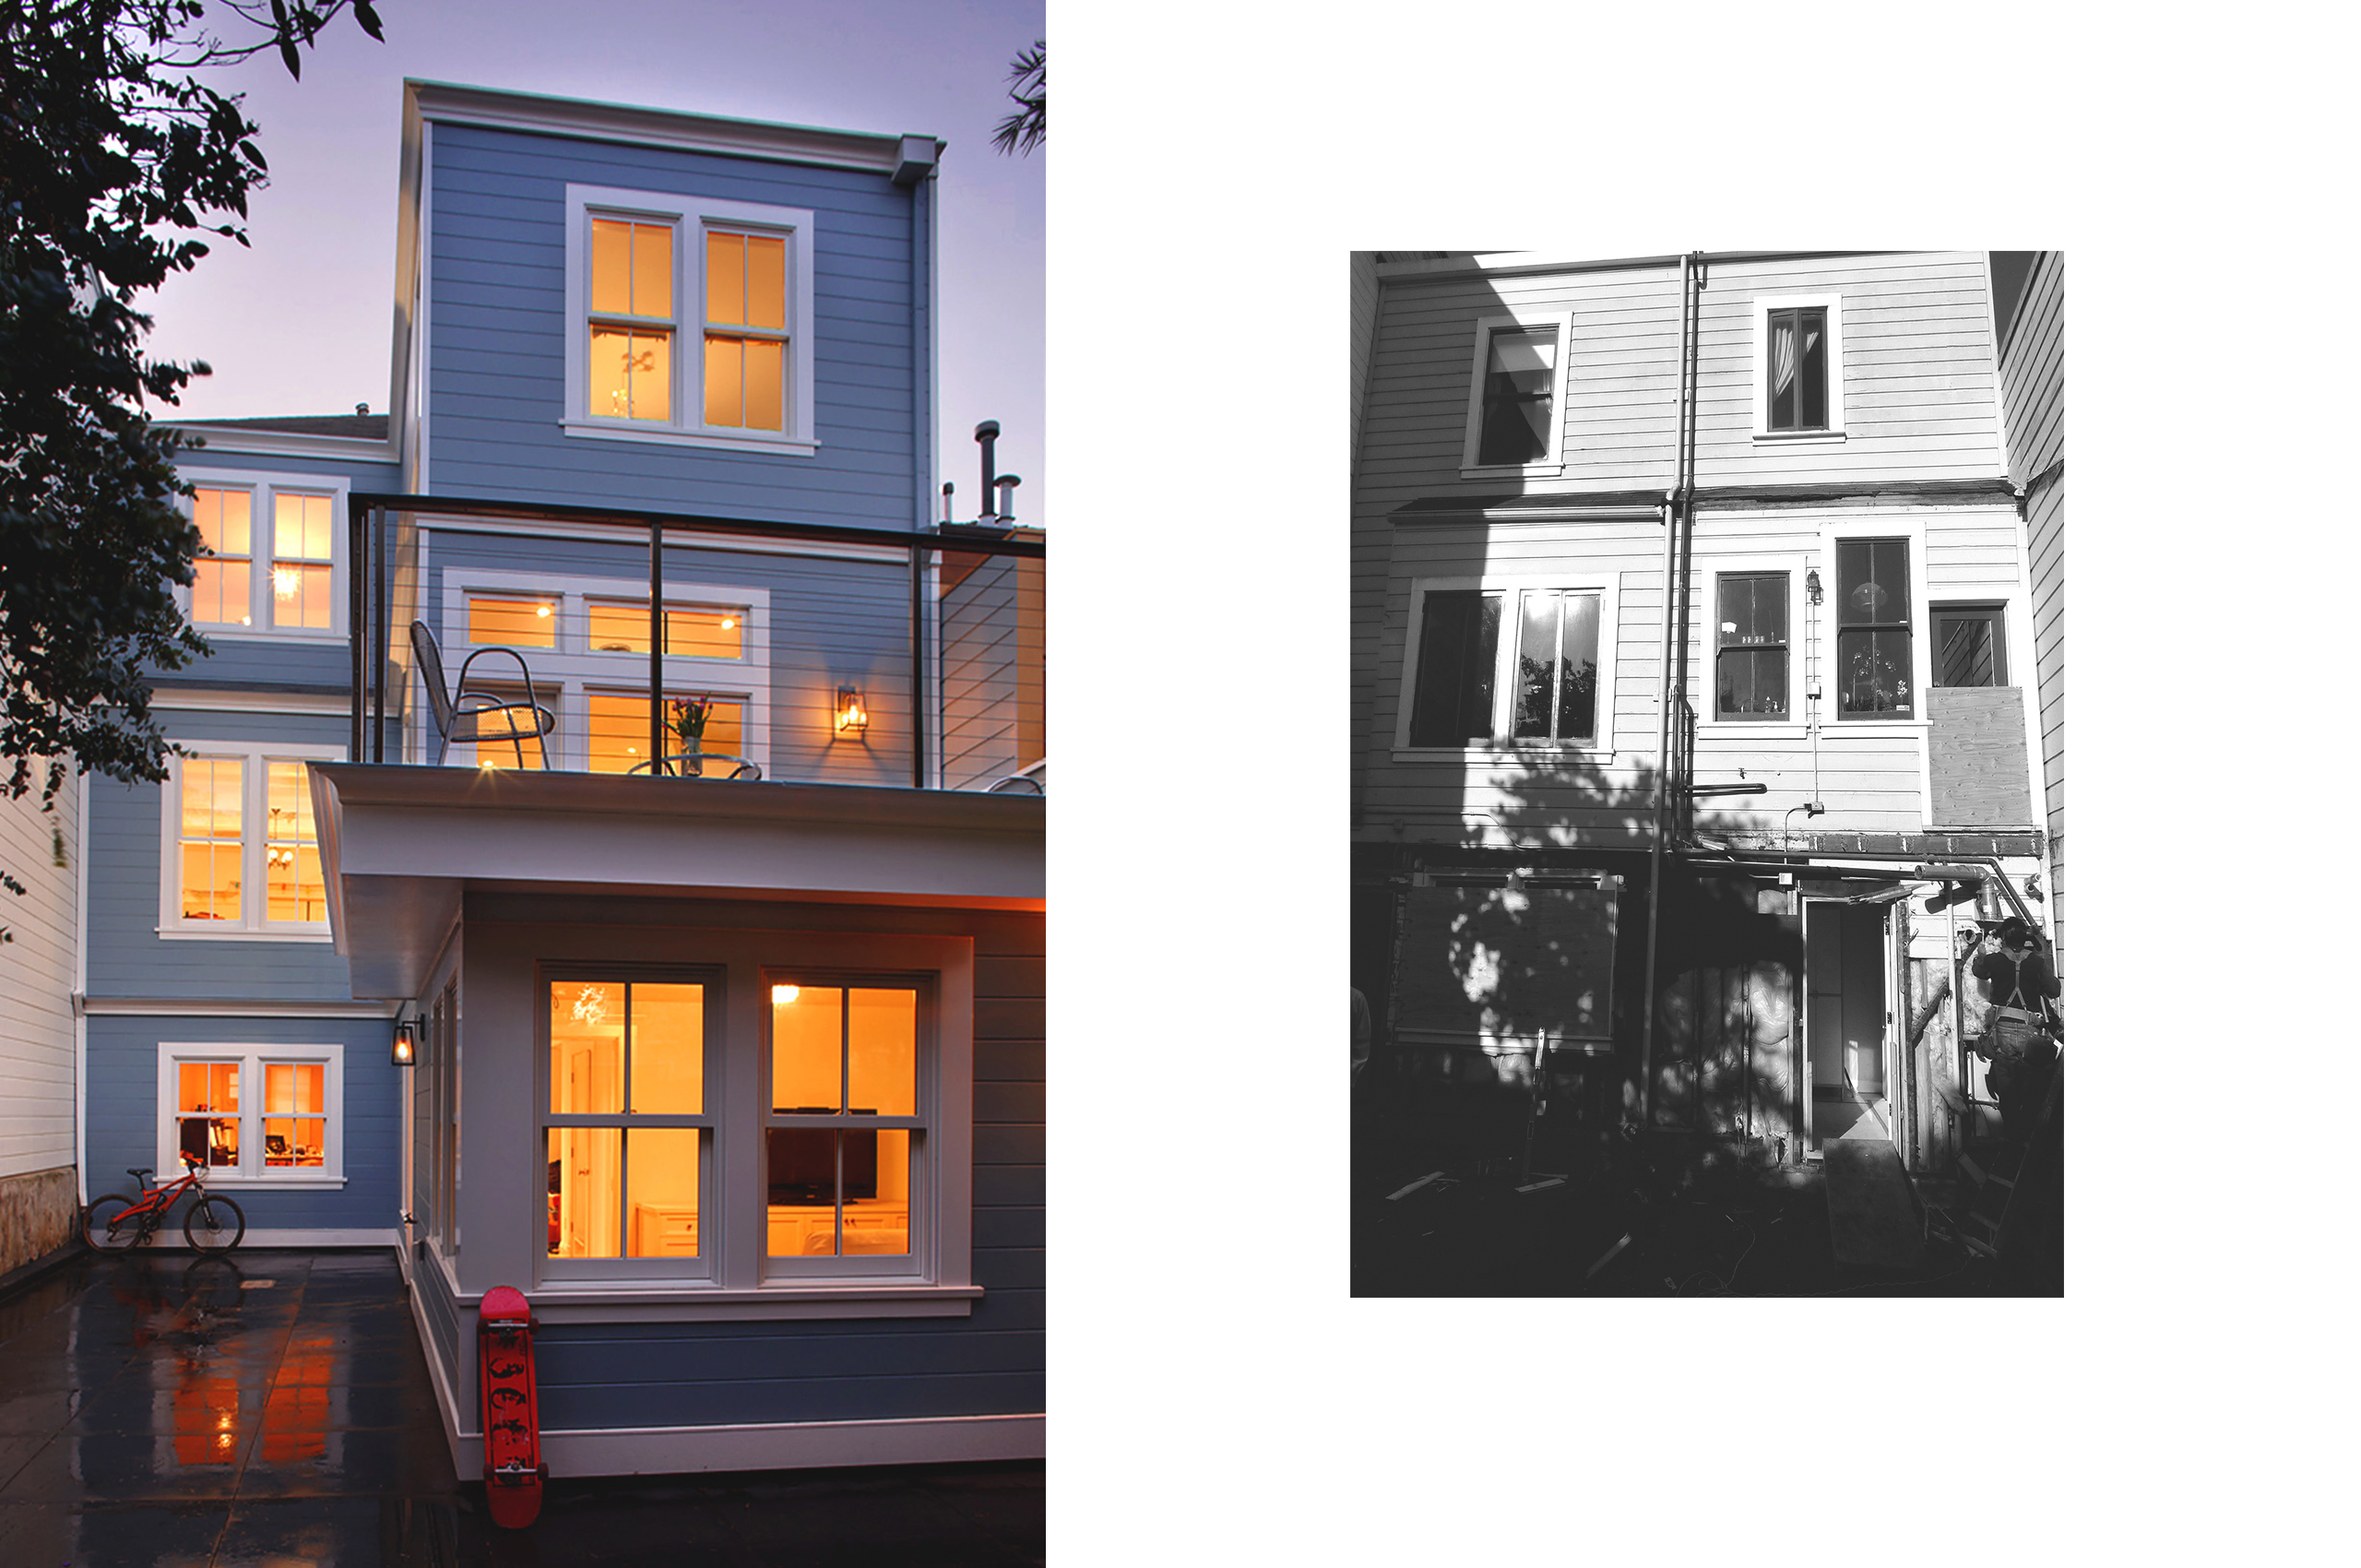 SF Classic Exterior After + Before FINAL.jpg